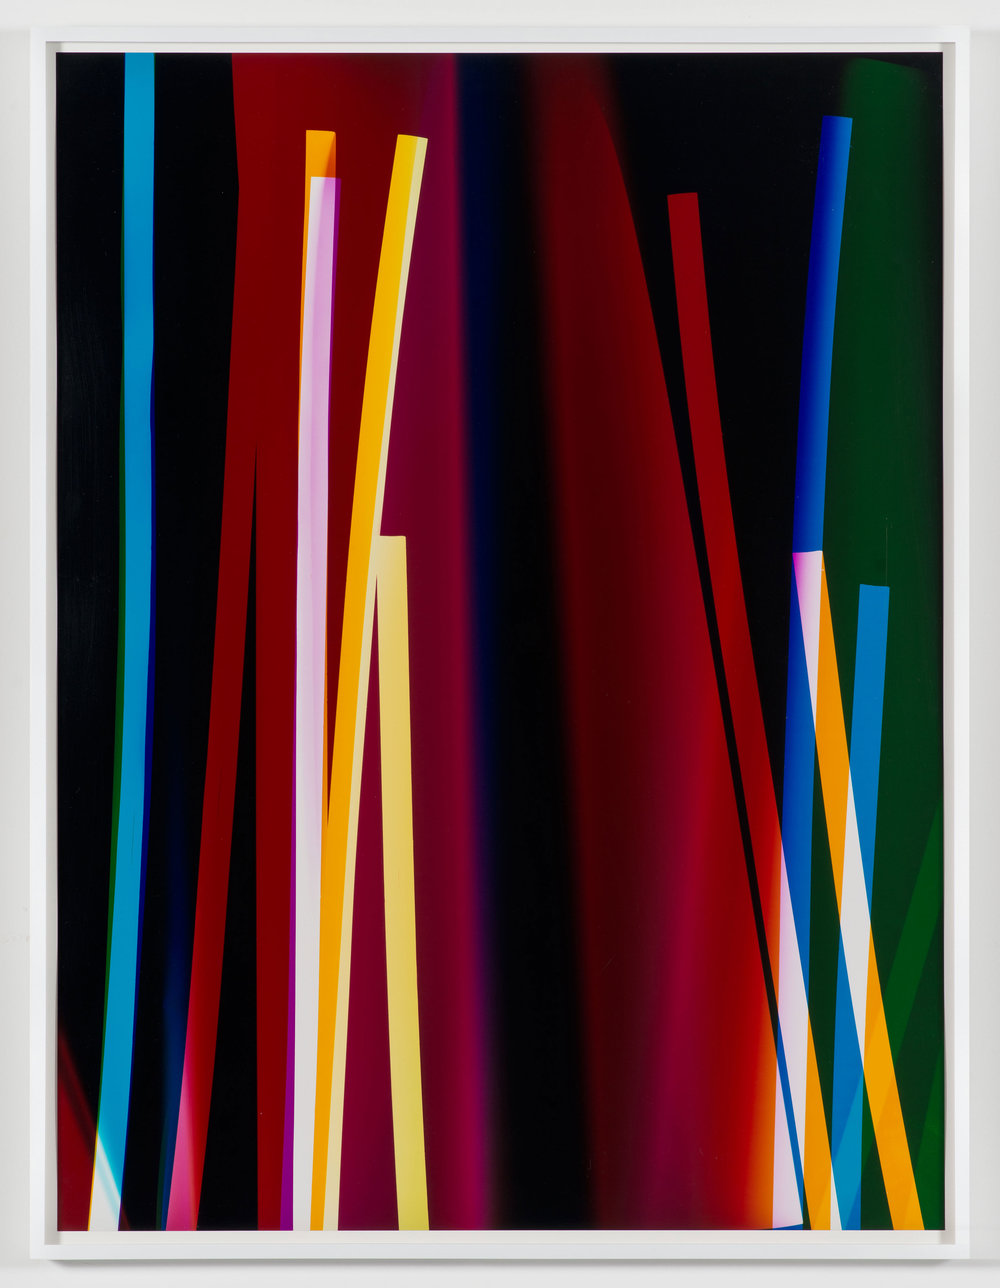 Four Magnet, Three Color Curl (CMY: Irvine, California, September 13, 2009, Fuji Crystal Archive Type C)   2009  Color photographic paper  40 x 30 inches   Three-Color Curls, 2008–2013